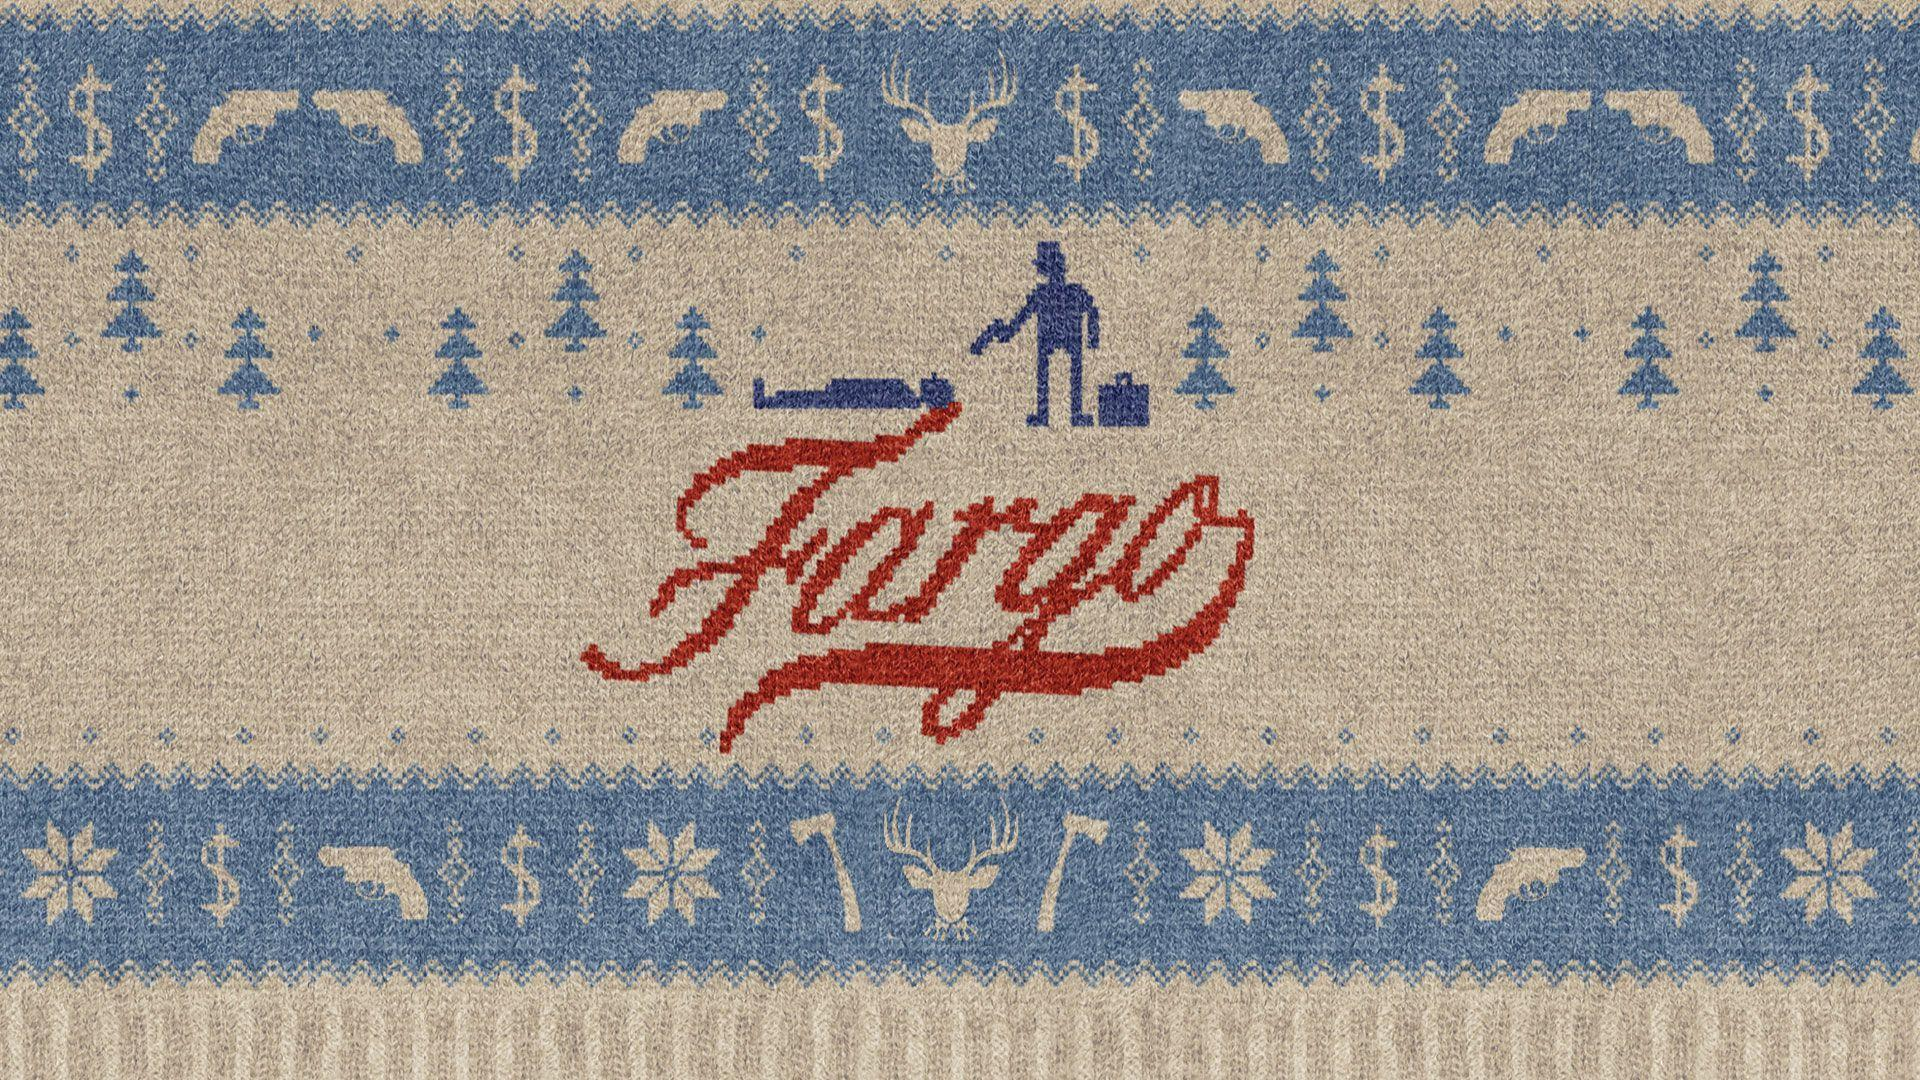 30 Fargo HD Wallpapers | Backgrounds - Wallpaper Abyss